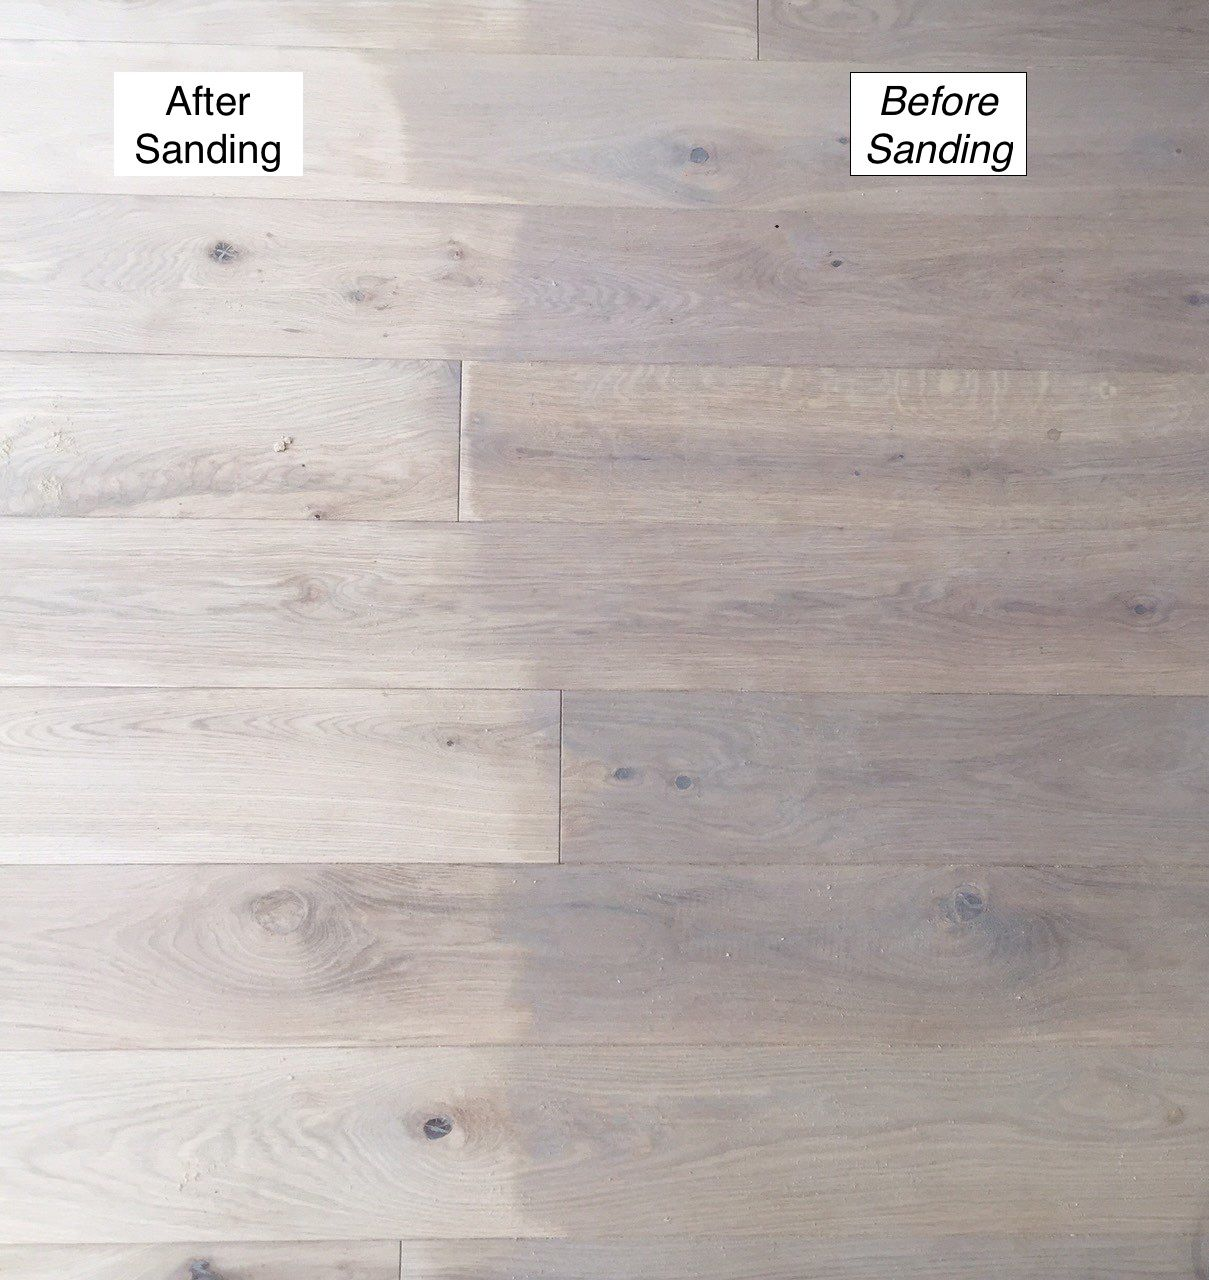 Hardwood flooring contractor based in Glasgow and